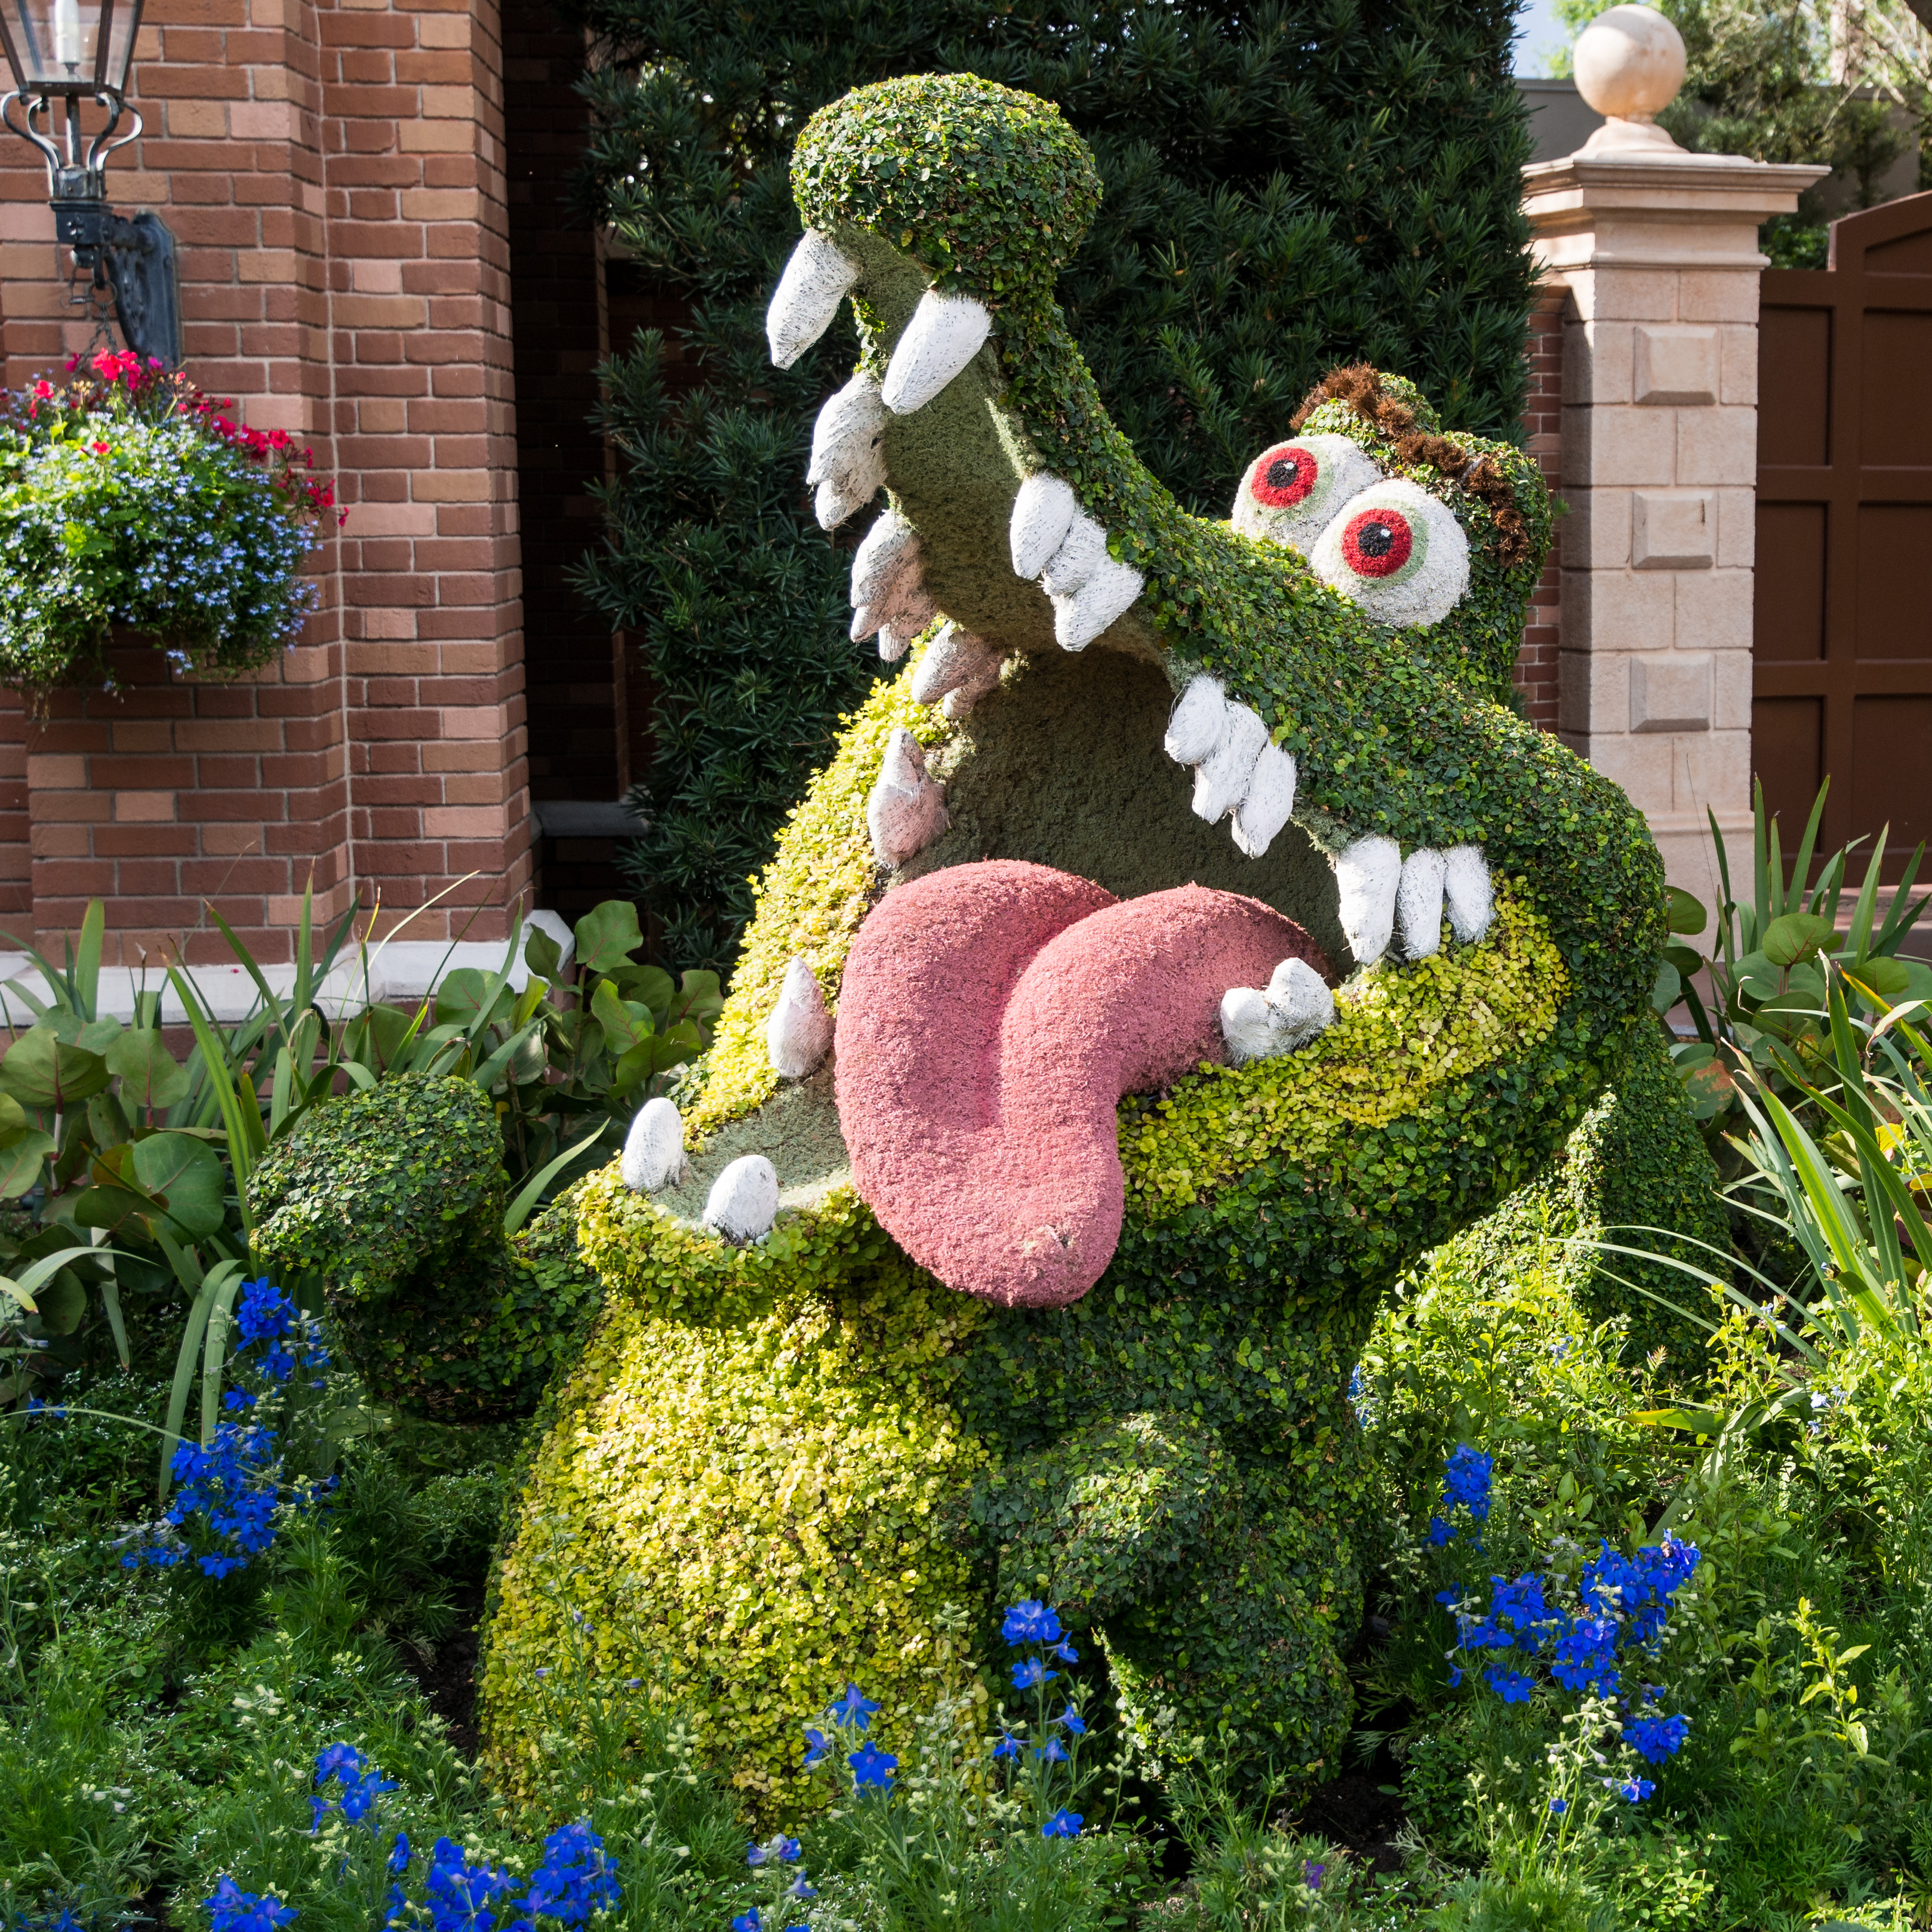 Amazing Topiary: Tick Tock's Totally Topiary Teeth